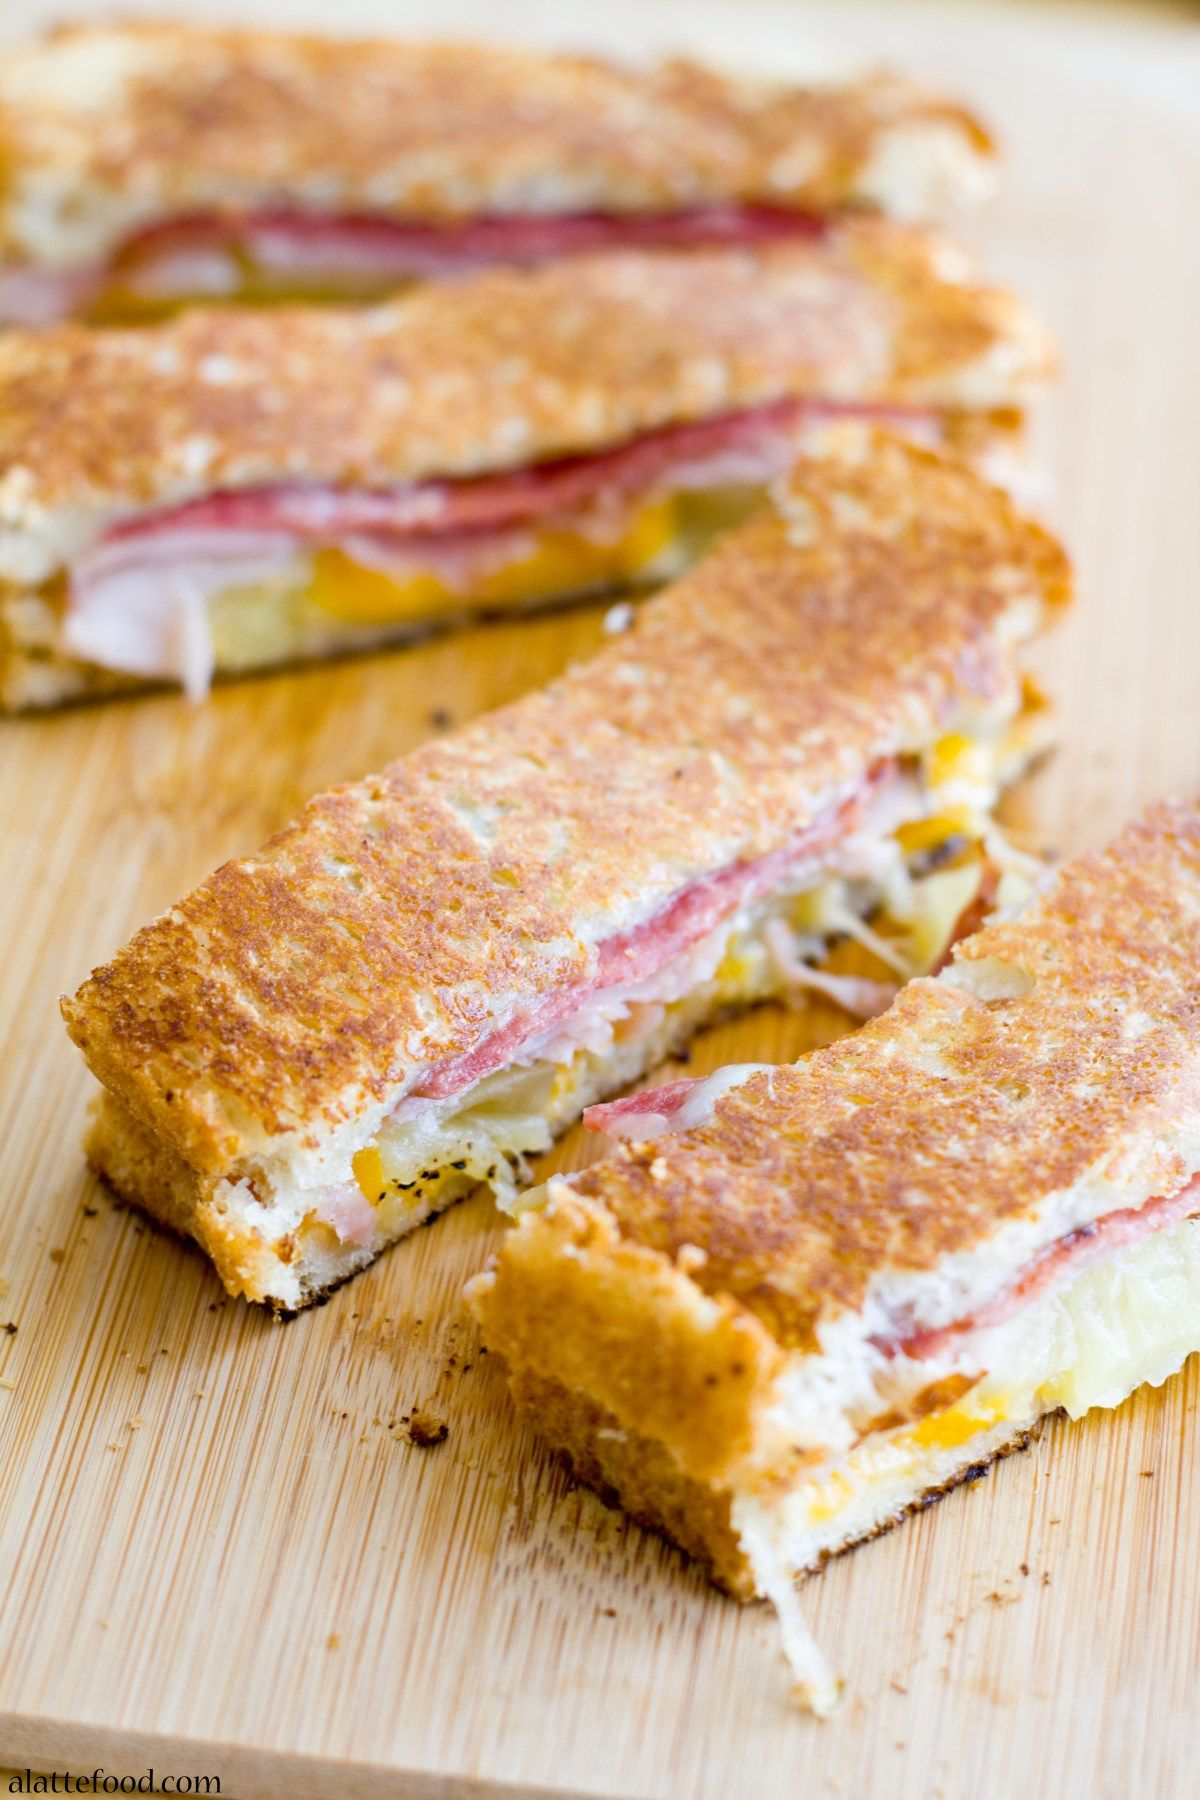 Hawaiian Grilled Cheese: Thesegrilled cheese dippers have comfort written all over them!  Sundays were made for things like chocolate cake, cheesy pizza, all the coffee lattes, and major relaxati…